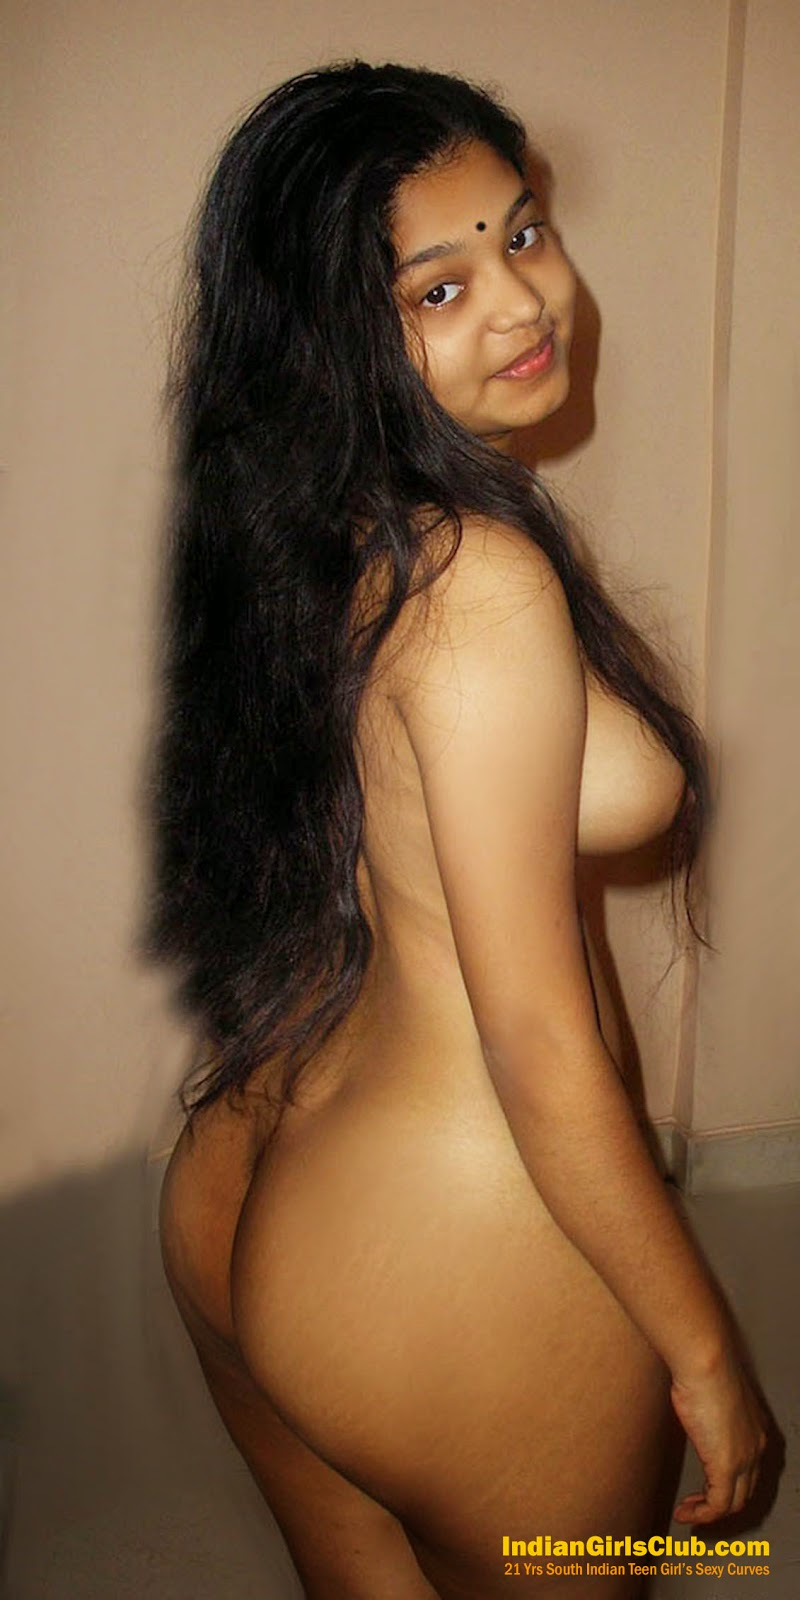 Bangla desi girl self shot nipple and pussy at toilet 2 2